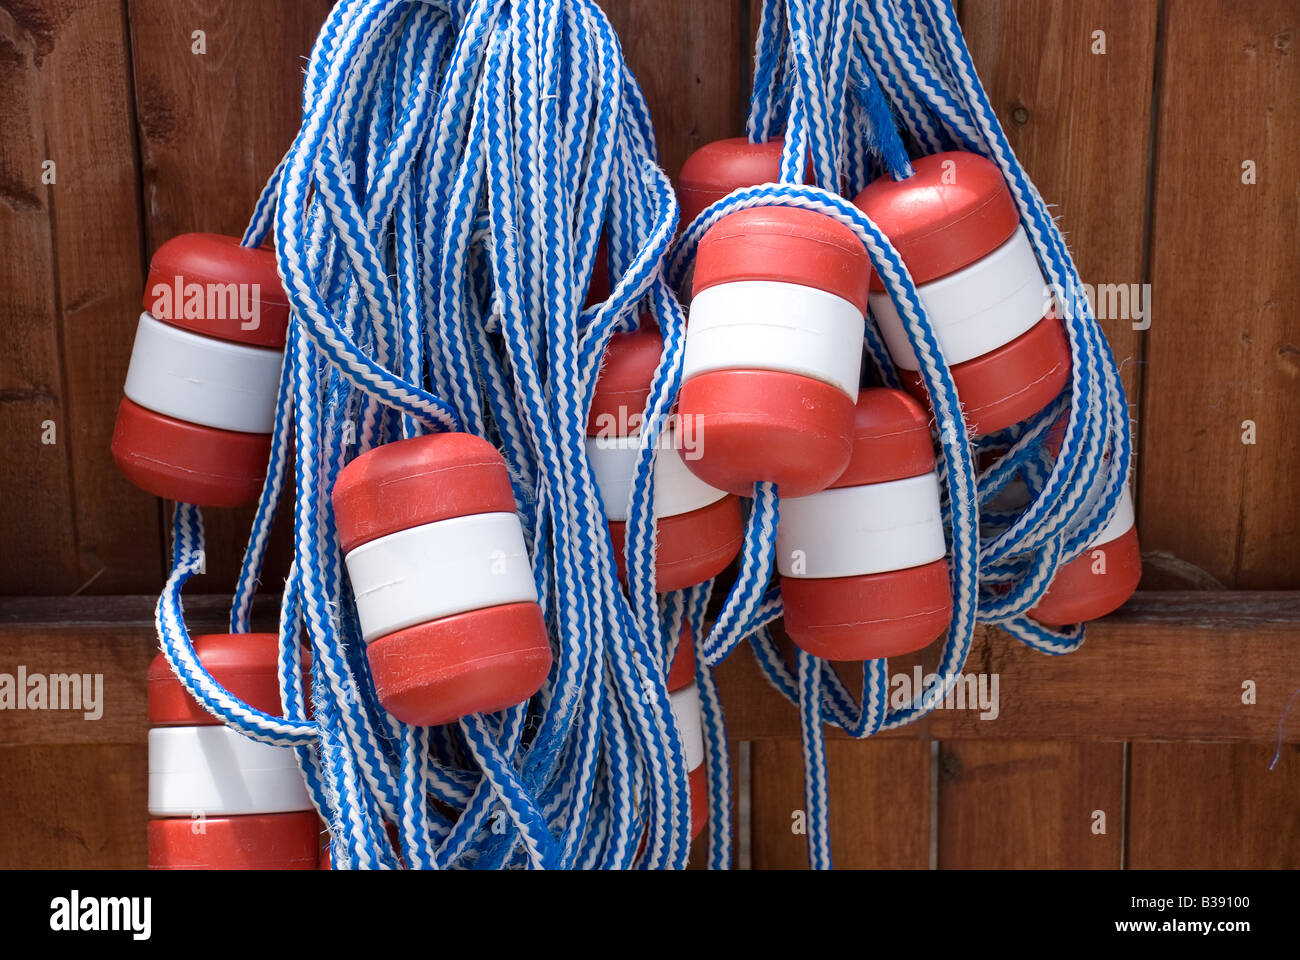 Swimming pool lane floats hang on a fence as their summer storage location - Stock Image